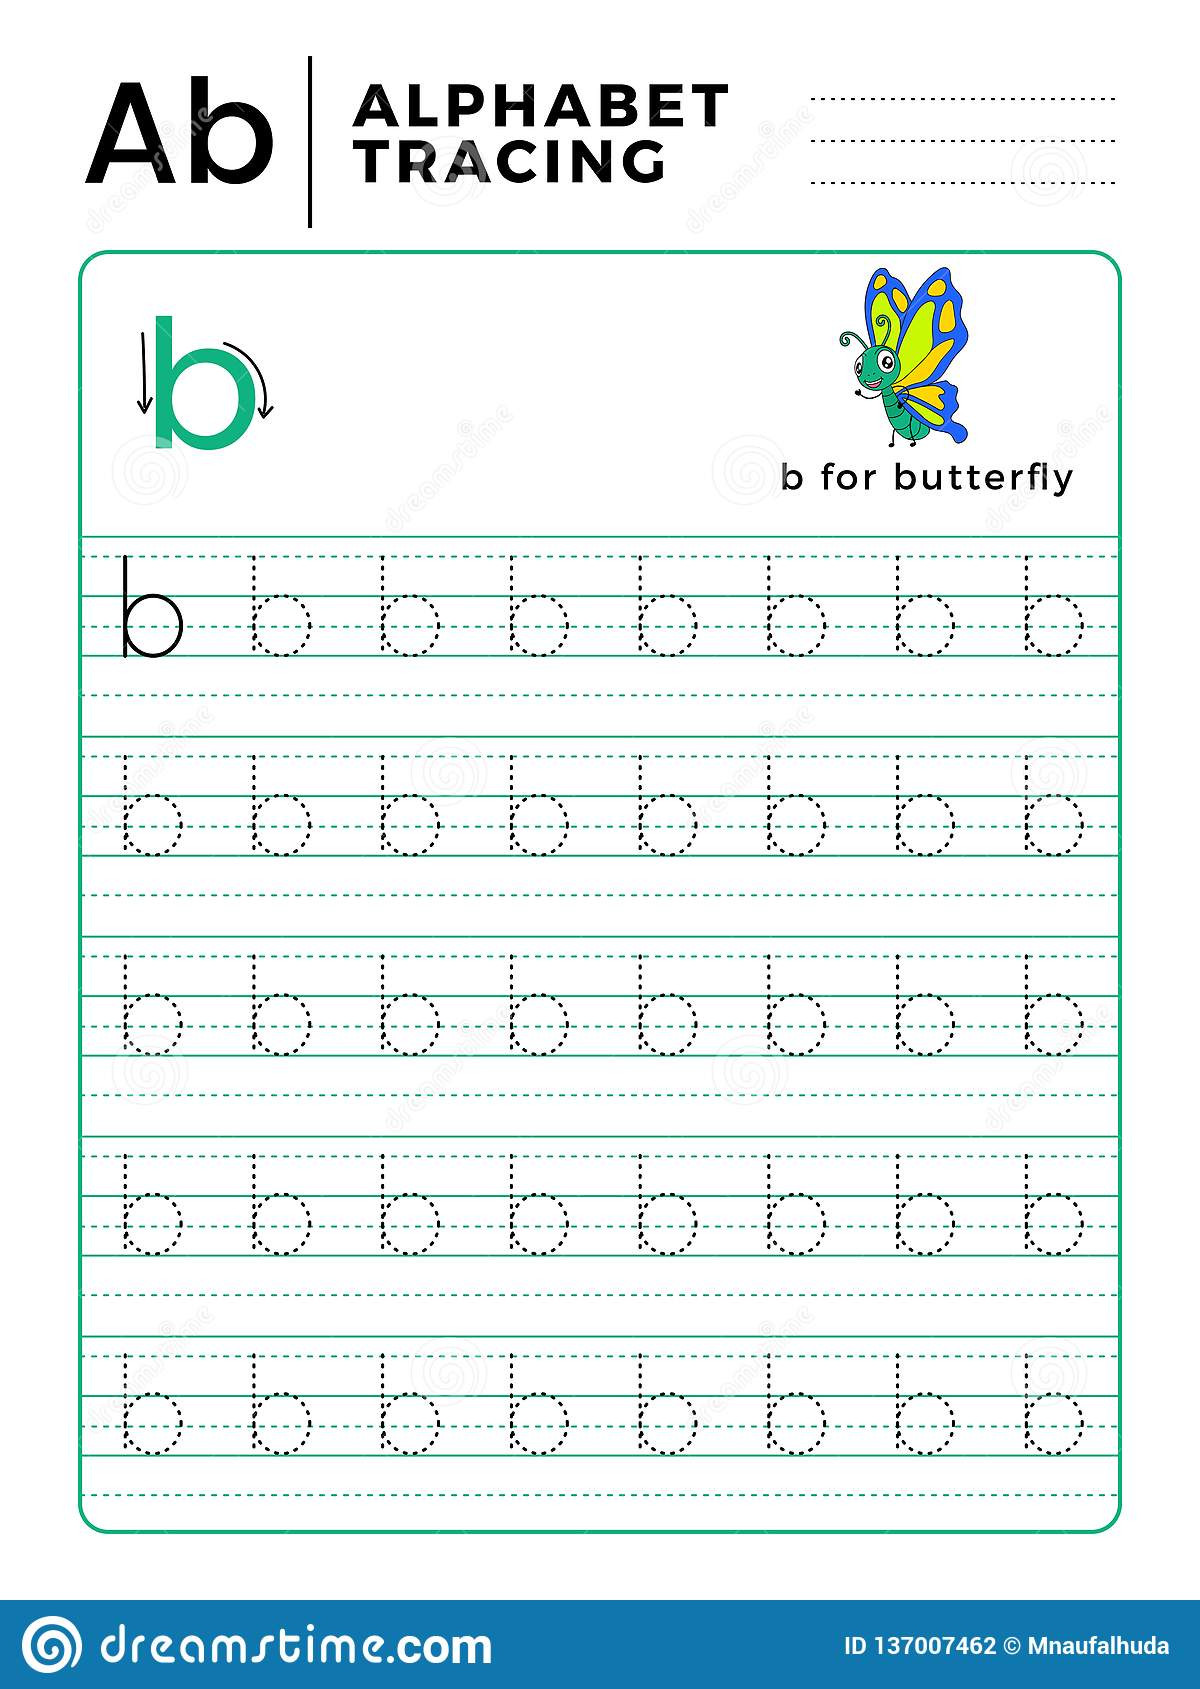 Preschool Worksheets Letter B Letter B Alphabet Tracing Book with Example and Funny